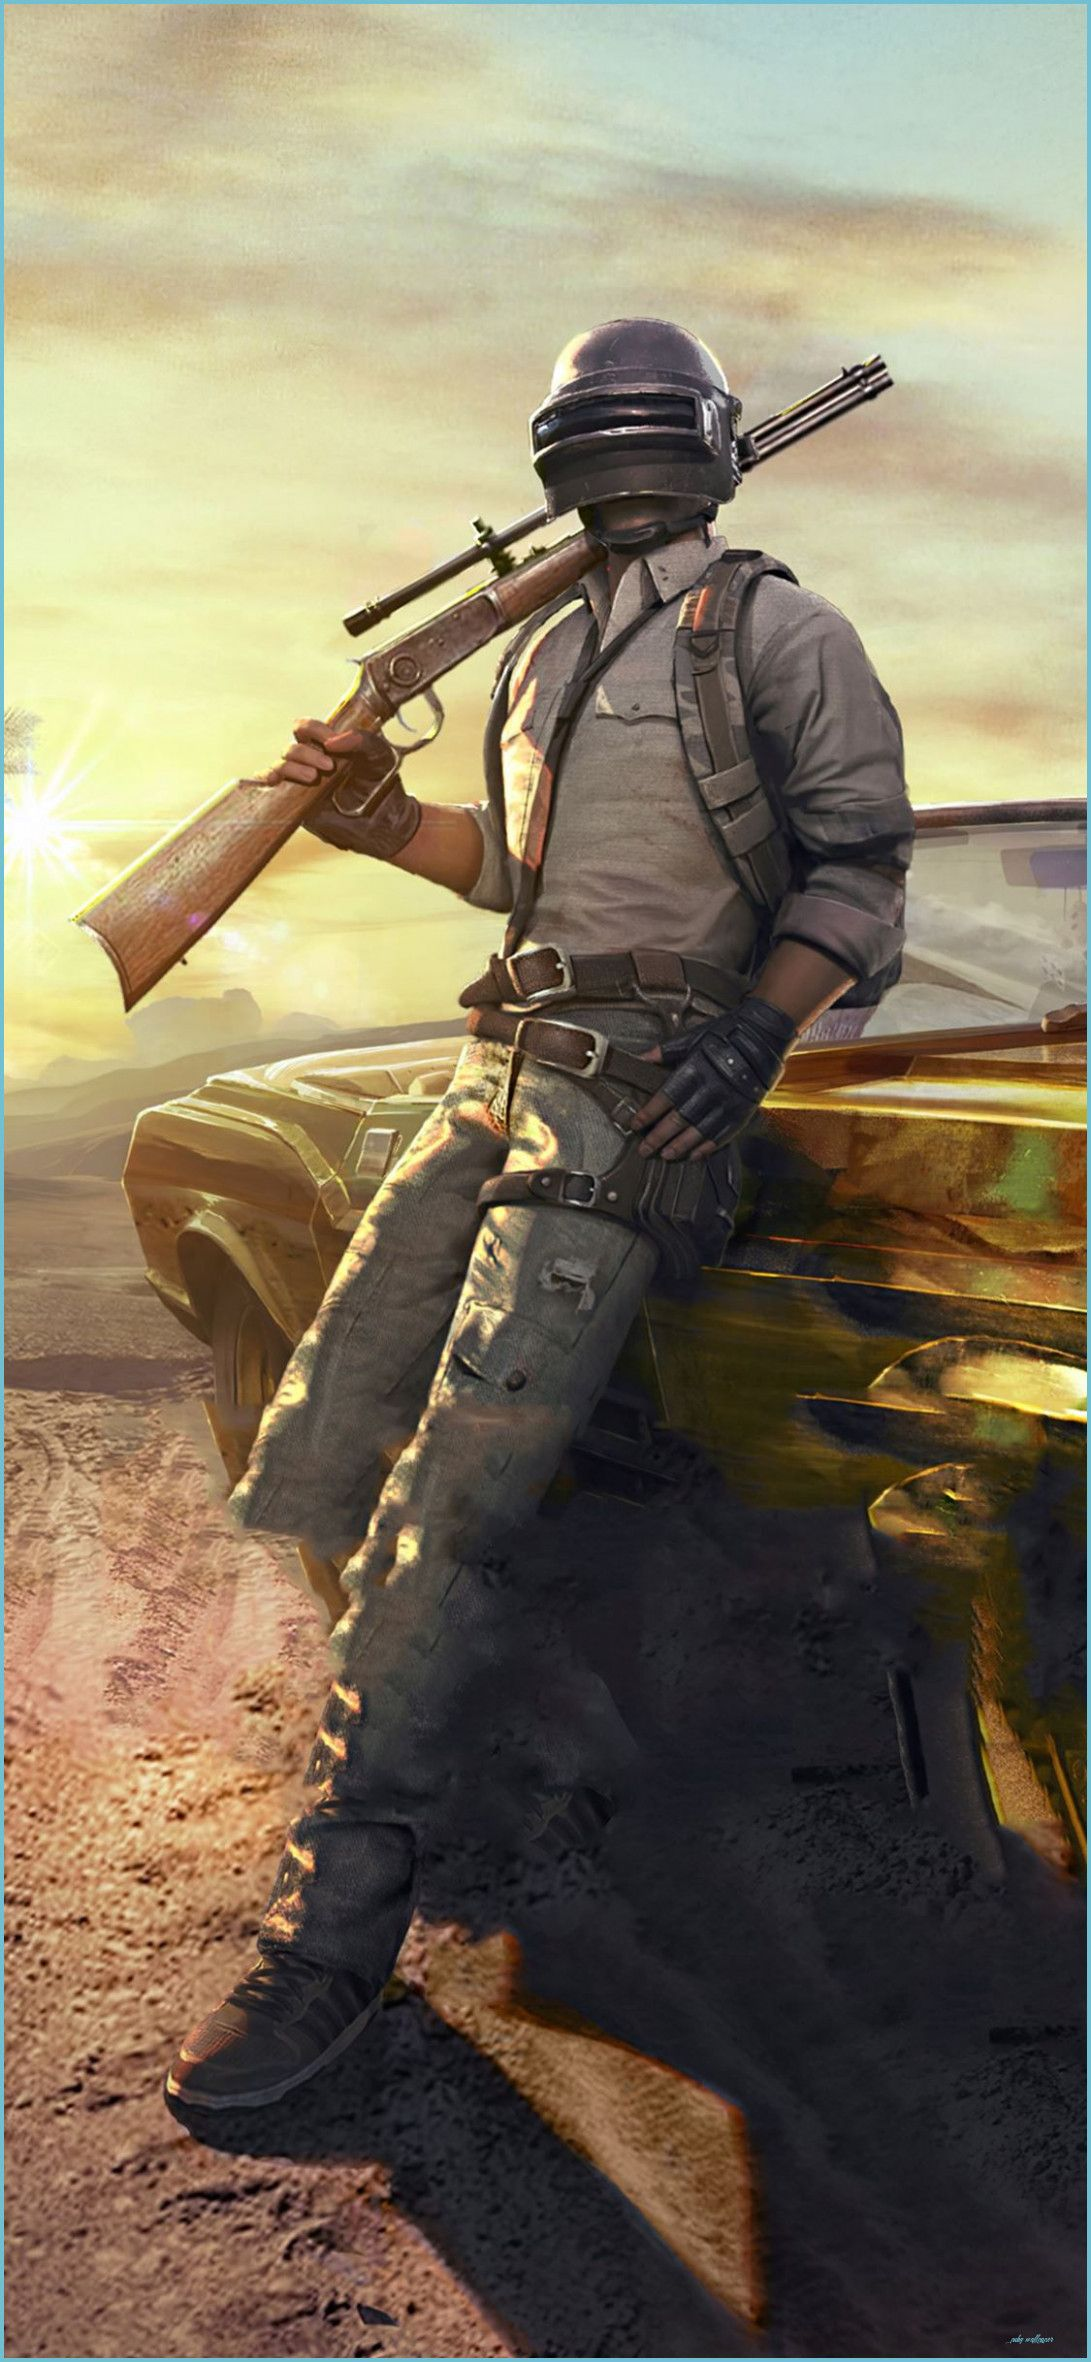 Understand The Background Of Pubg Wallpaper Now Pubg Wallpaper Wallpaper Iphone Wallpaper Hd Wallpapers For Mobile